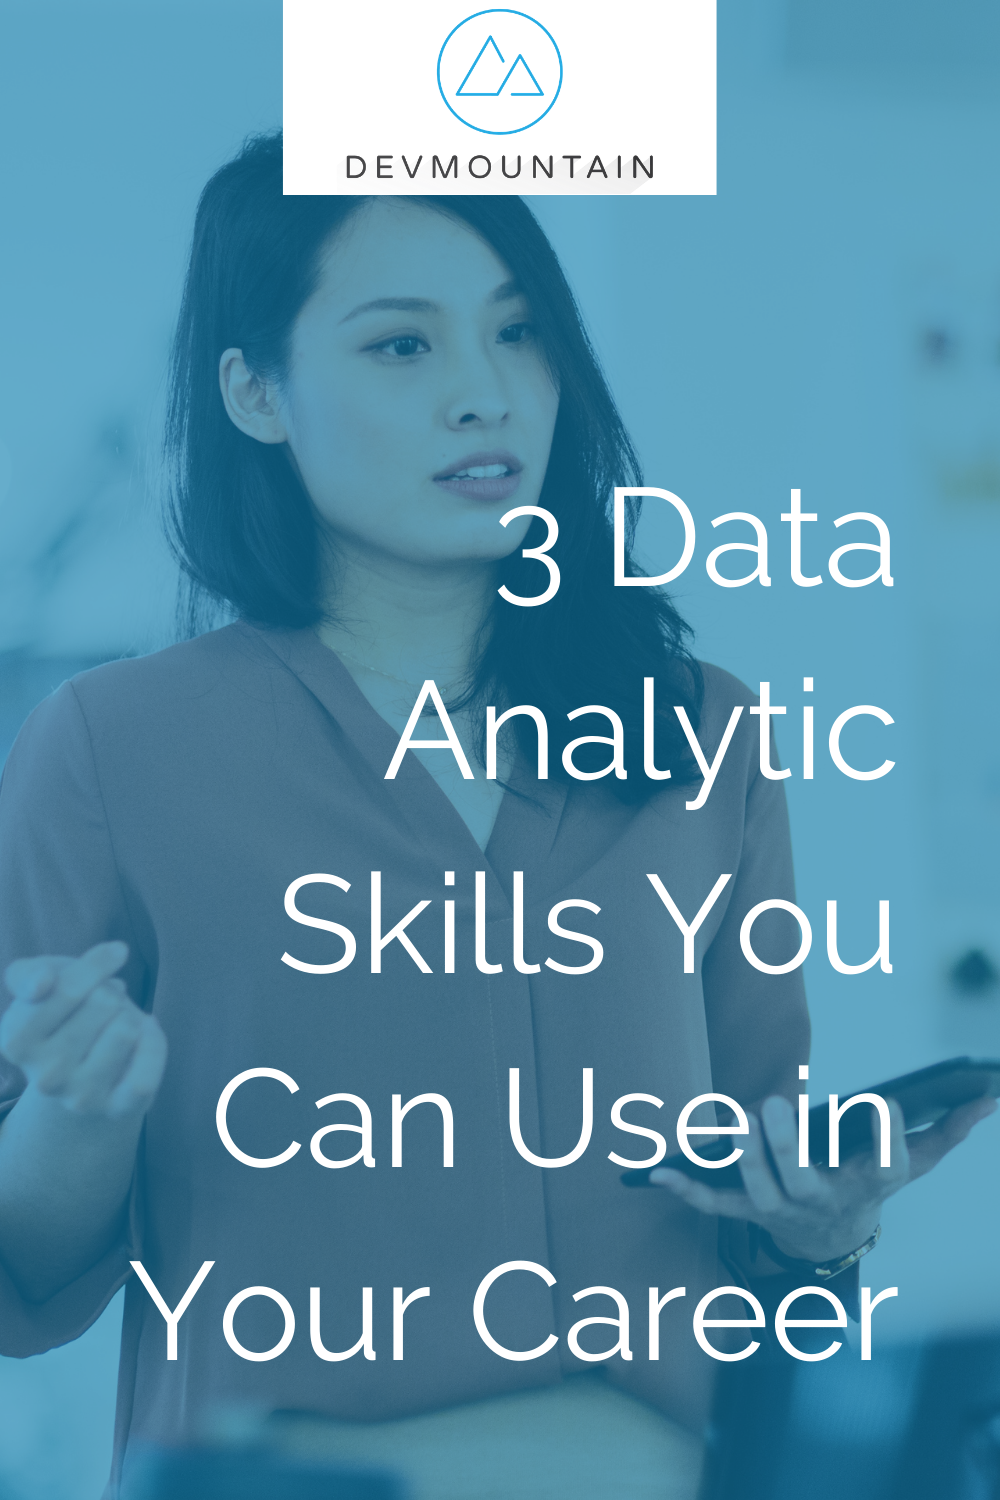 3 Data Analytic Skills You Can Use in Your Career